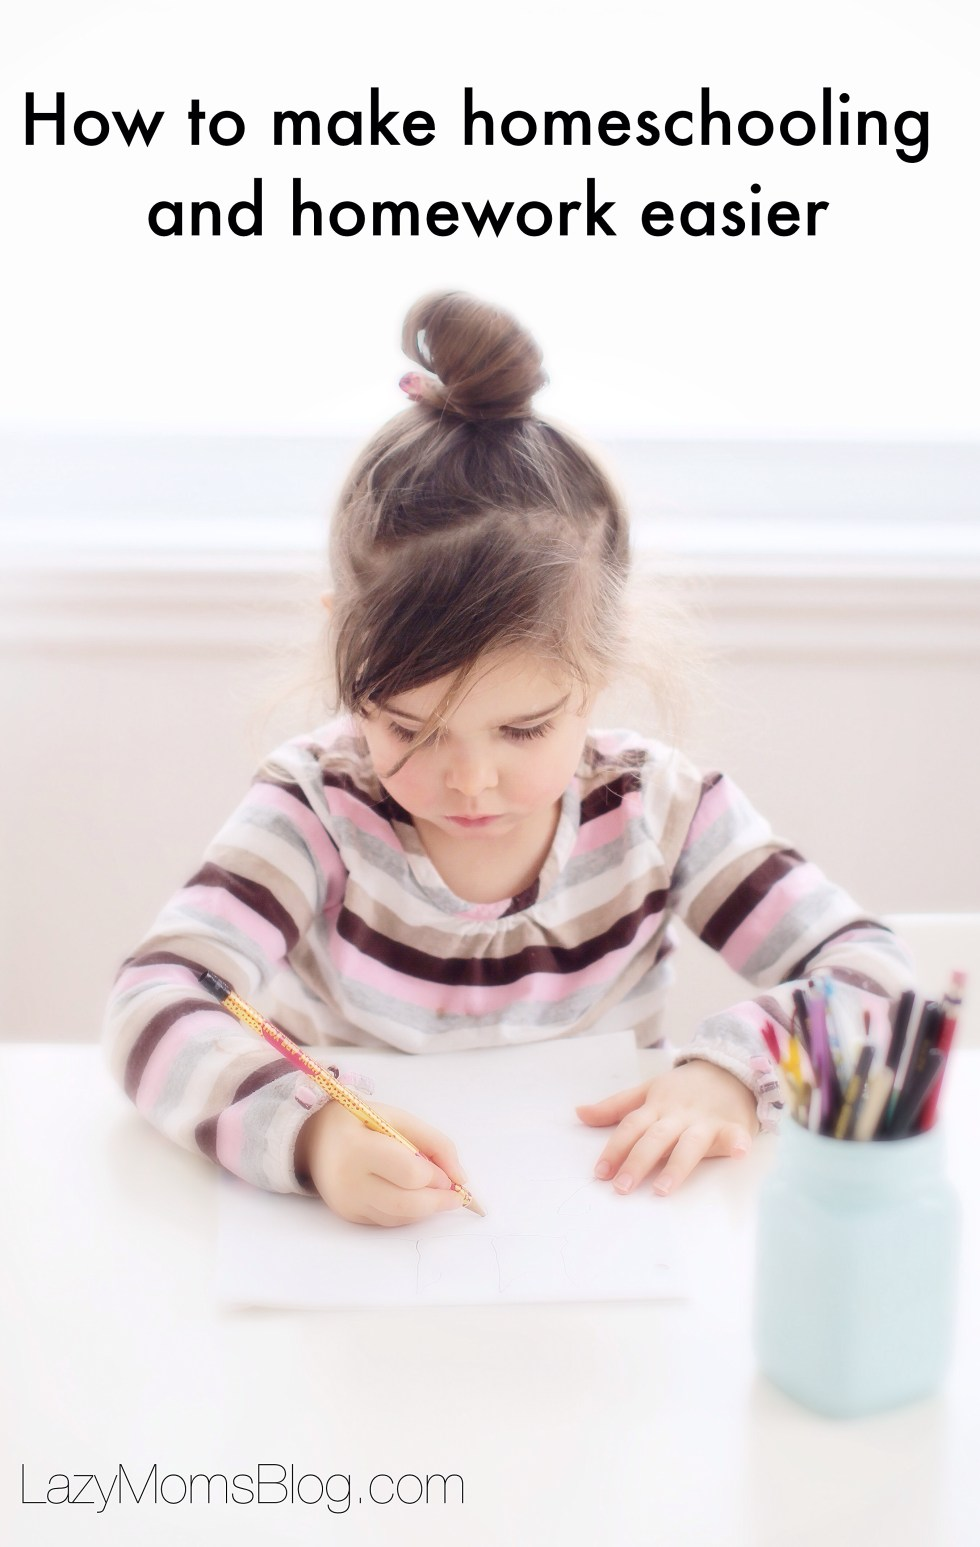 How to make homeschooling and homework easier, less stressful land more structured